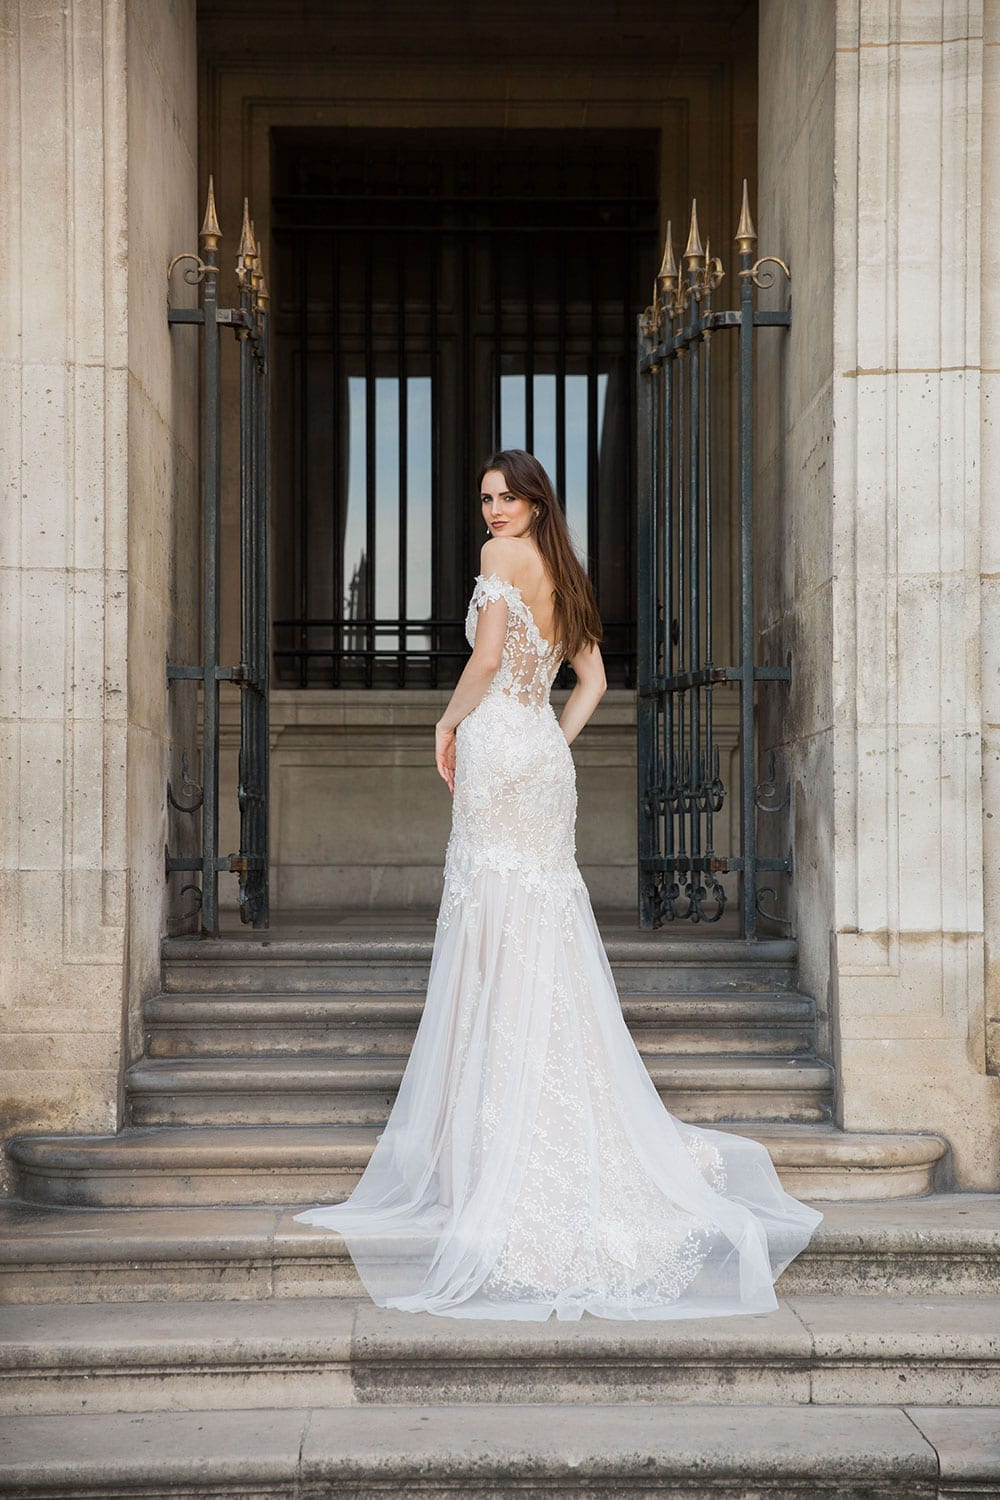 Model wearing Vinka Design Sashia Wedding Dress, an Off-Shoulder Fitted Lace and Tulle Gown looking over shoulder on steps in Paris